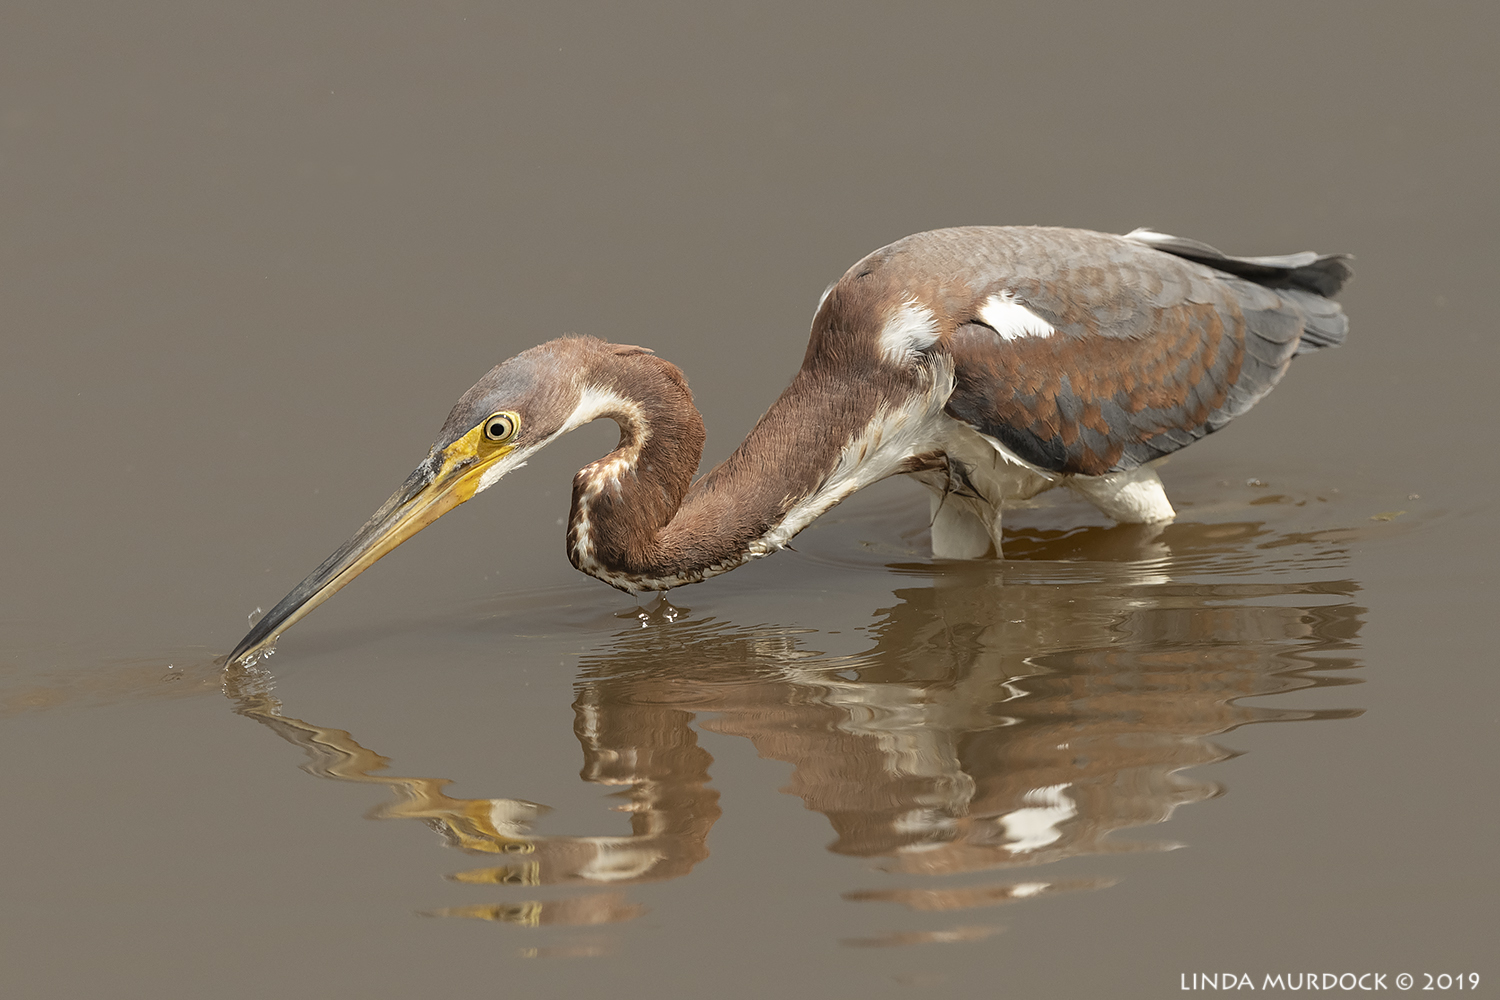 Juvenile Tricolored Heron  Nikon D850 with Nikkor 500 f/5.6 PF VR ~ 1/2500 sec f/6.3 ISO 640